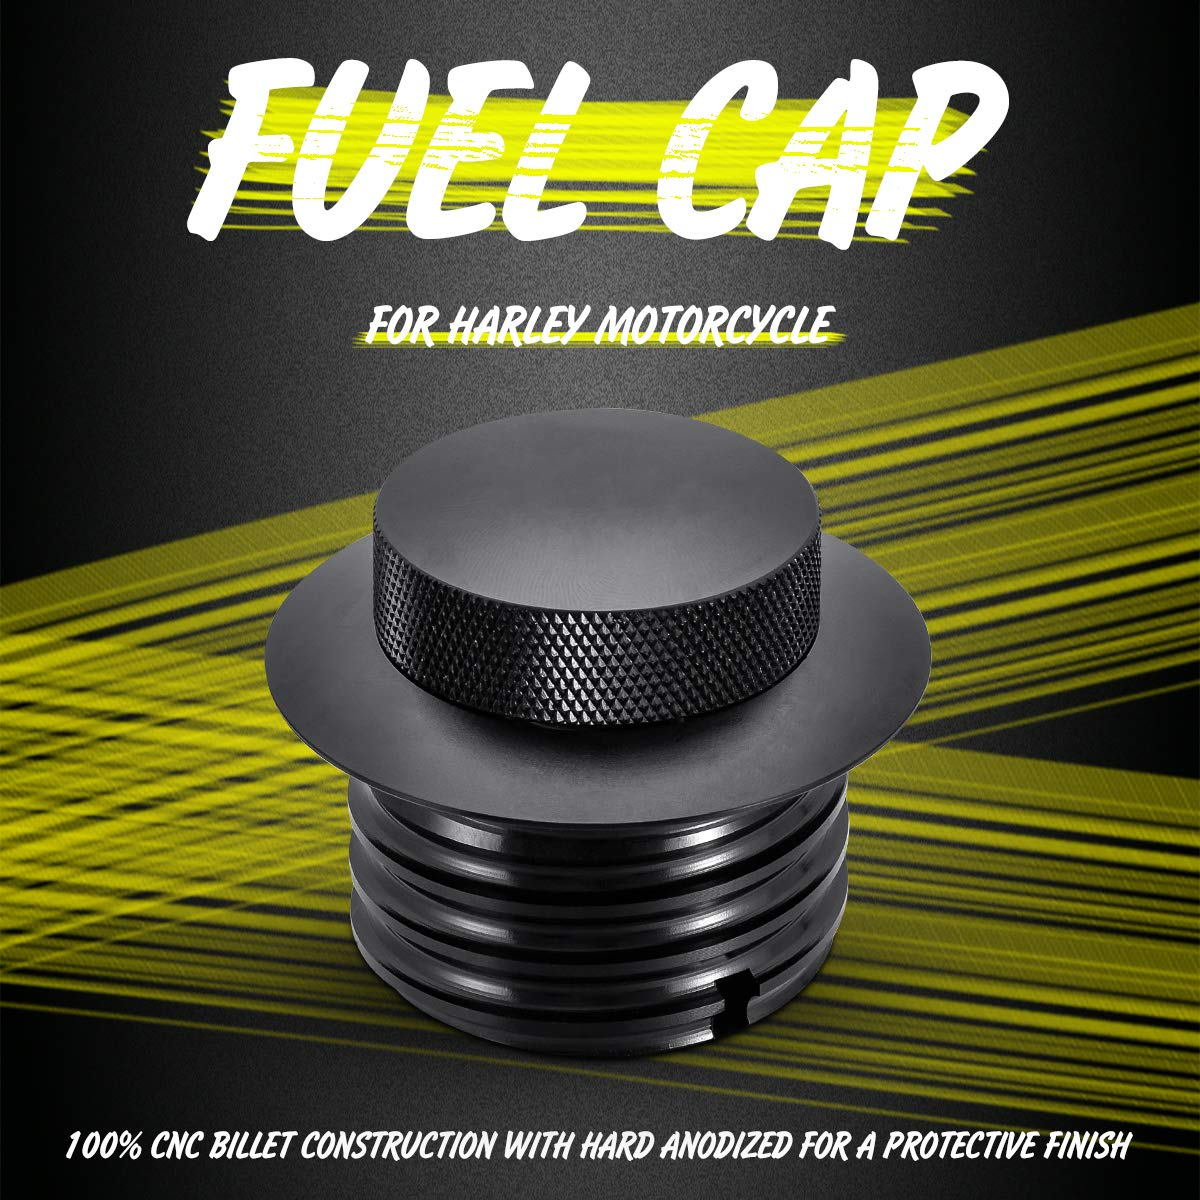 CNC Billet Aluminum Flush Pop Up Gas Cap Vented Fuel Tank Gas Cover Compatible with 1982-2018 Harley